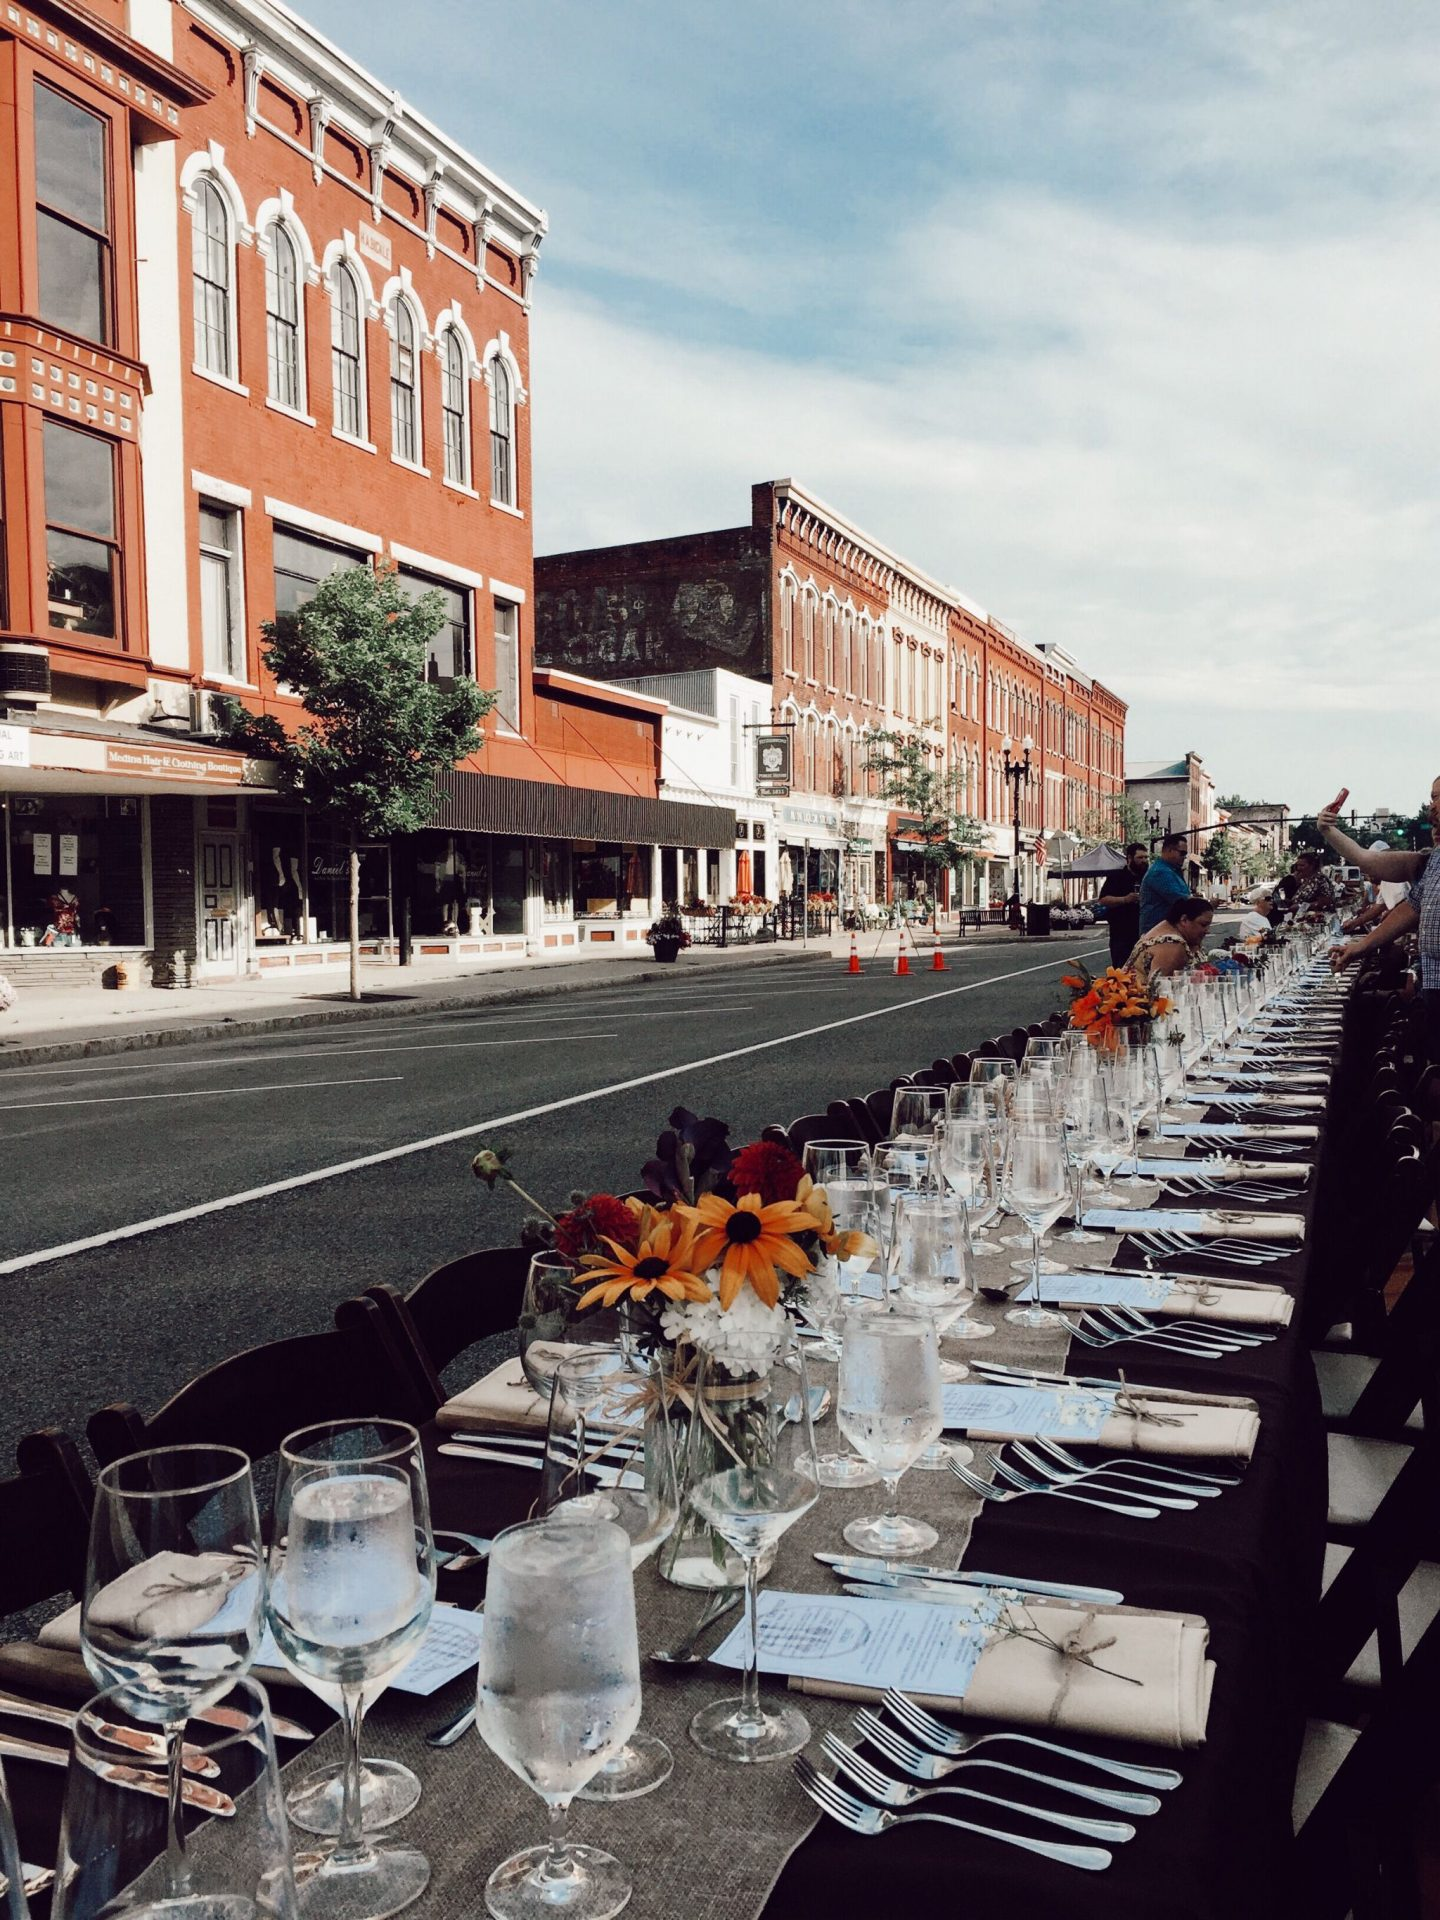 Farm-to-table dining on Main Street